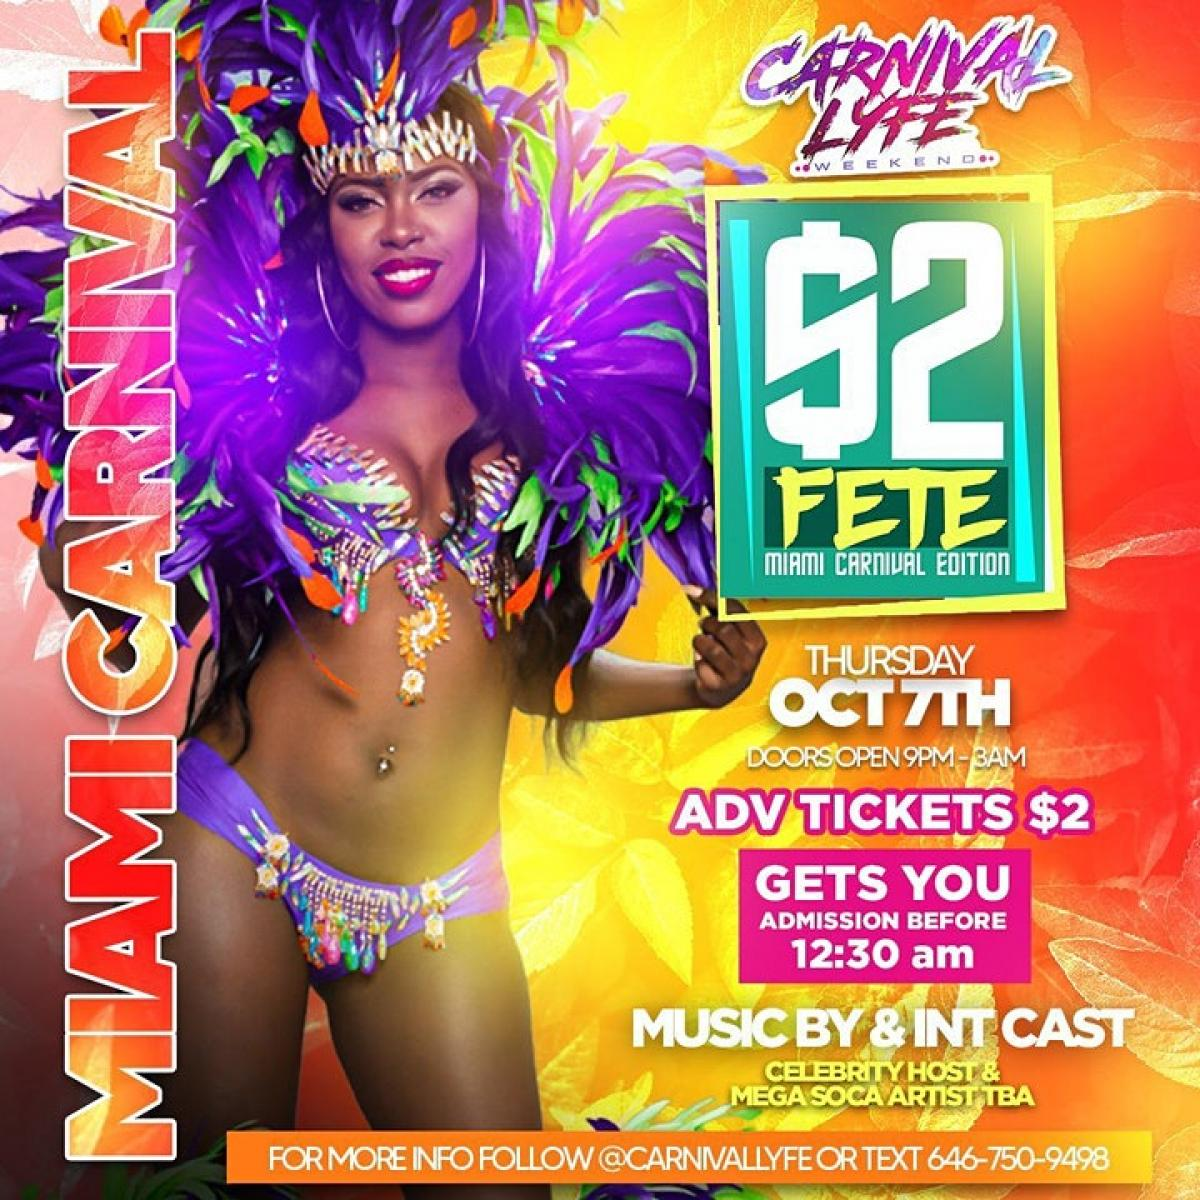 $2 Fete Miami Carnival Weekend flyer or graphic.